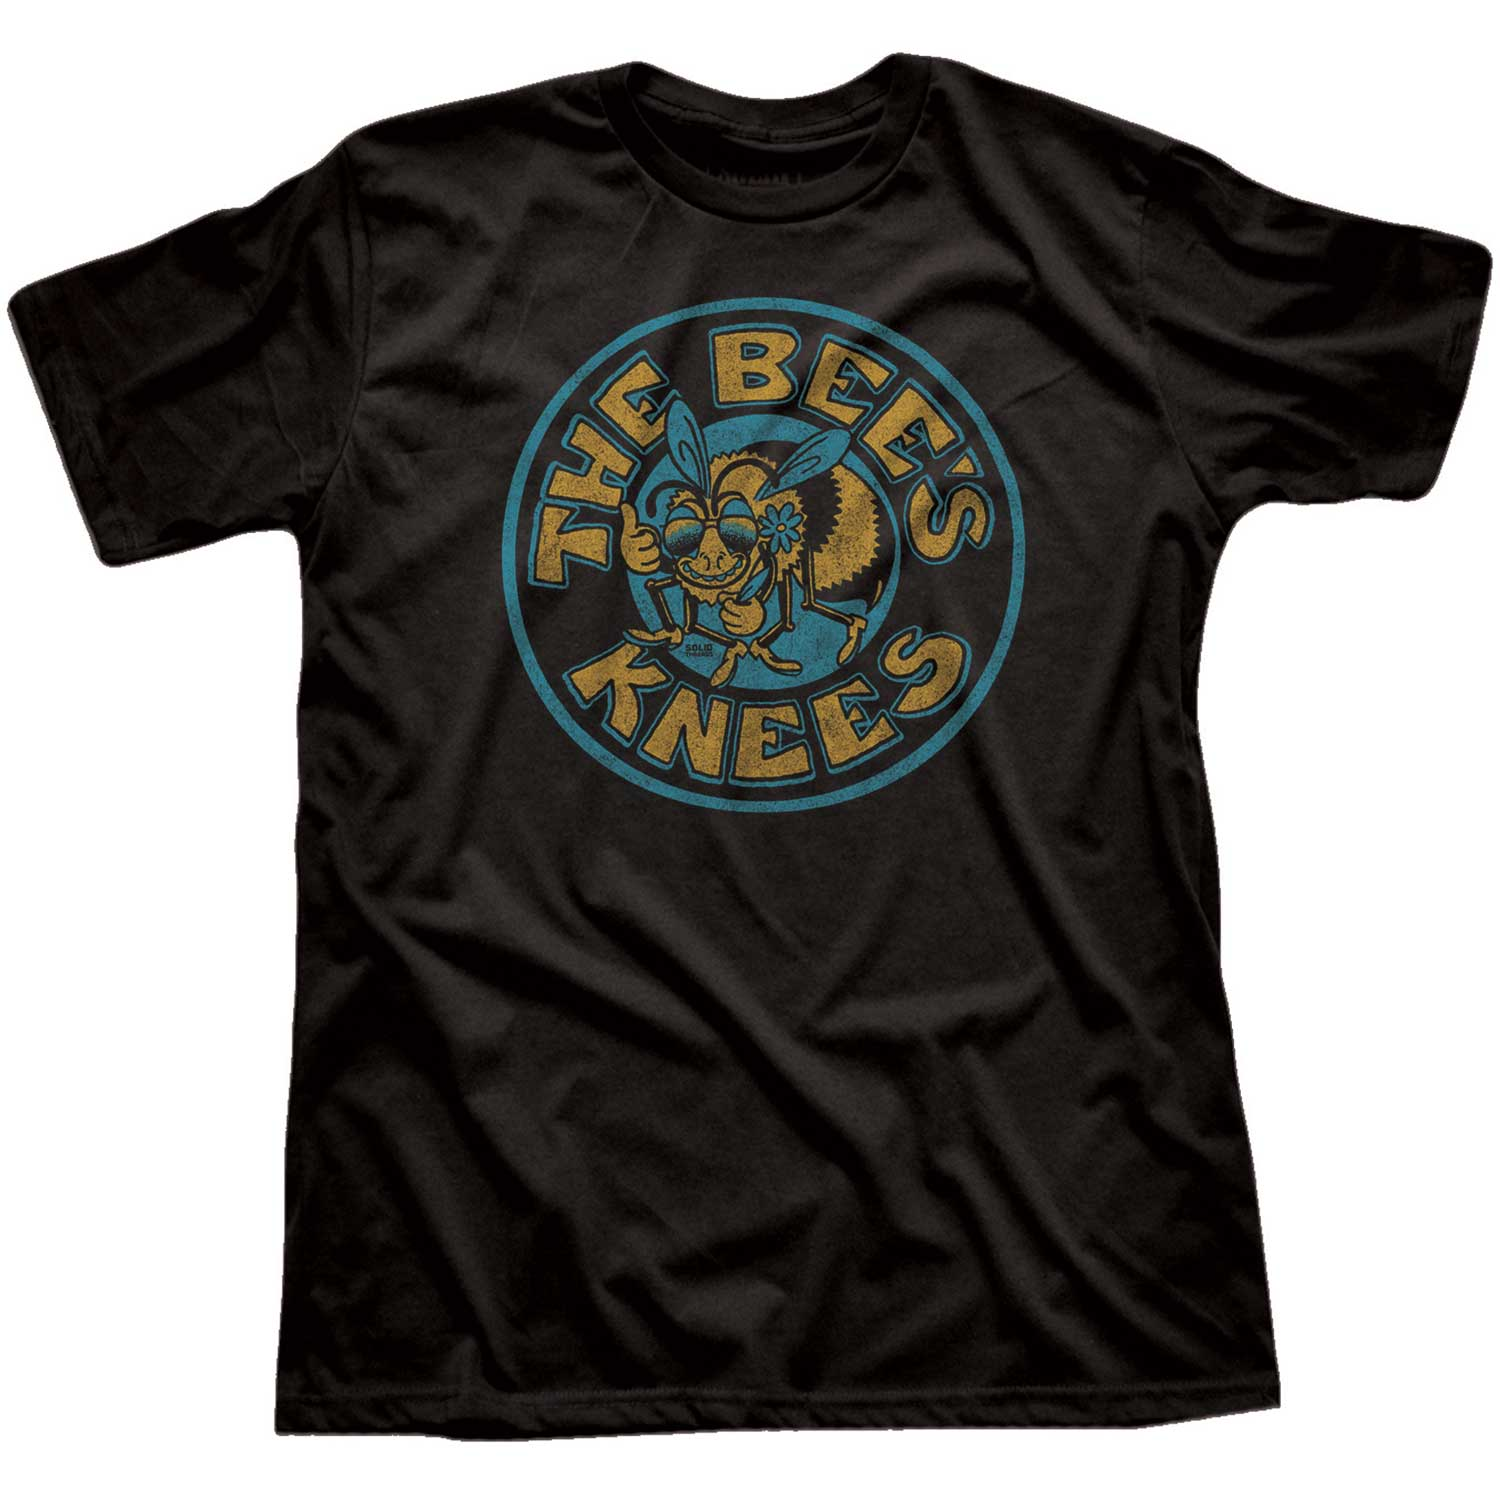 The Bee's Knees Vintage T-shirt | SOLID THREADS